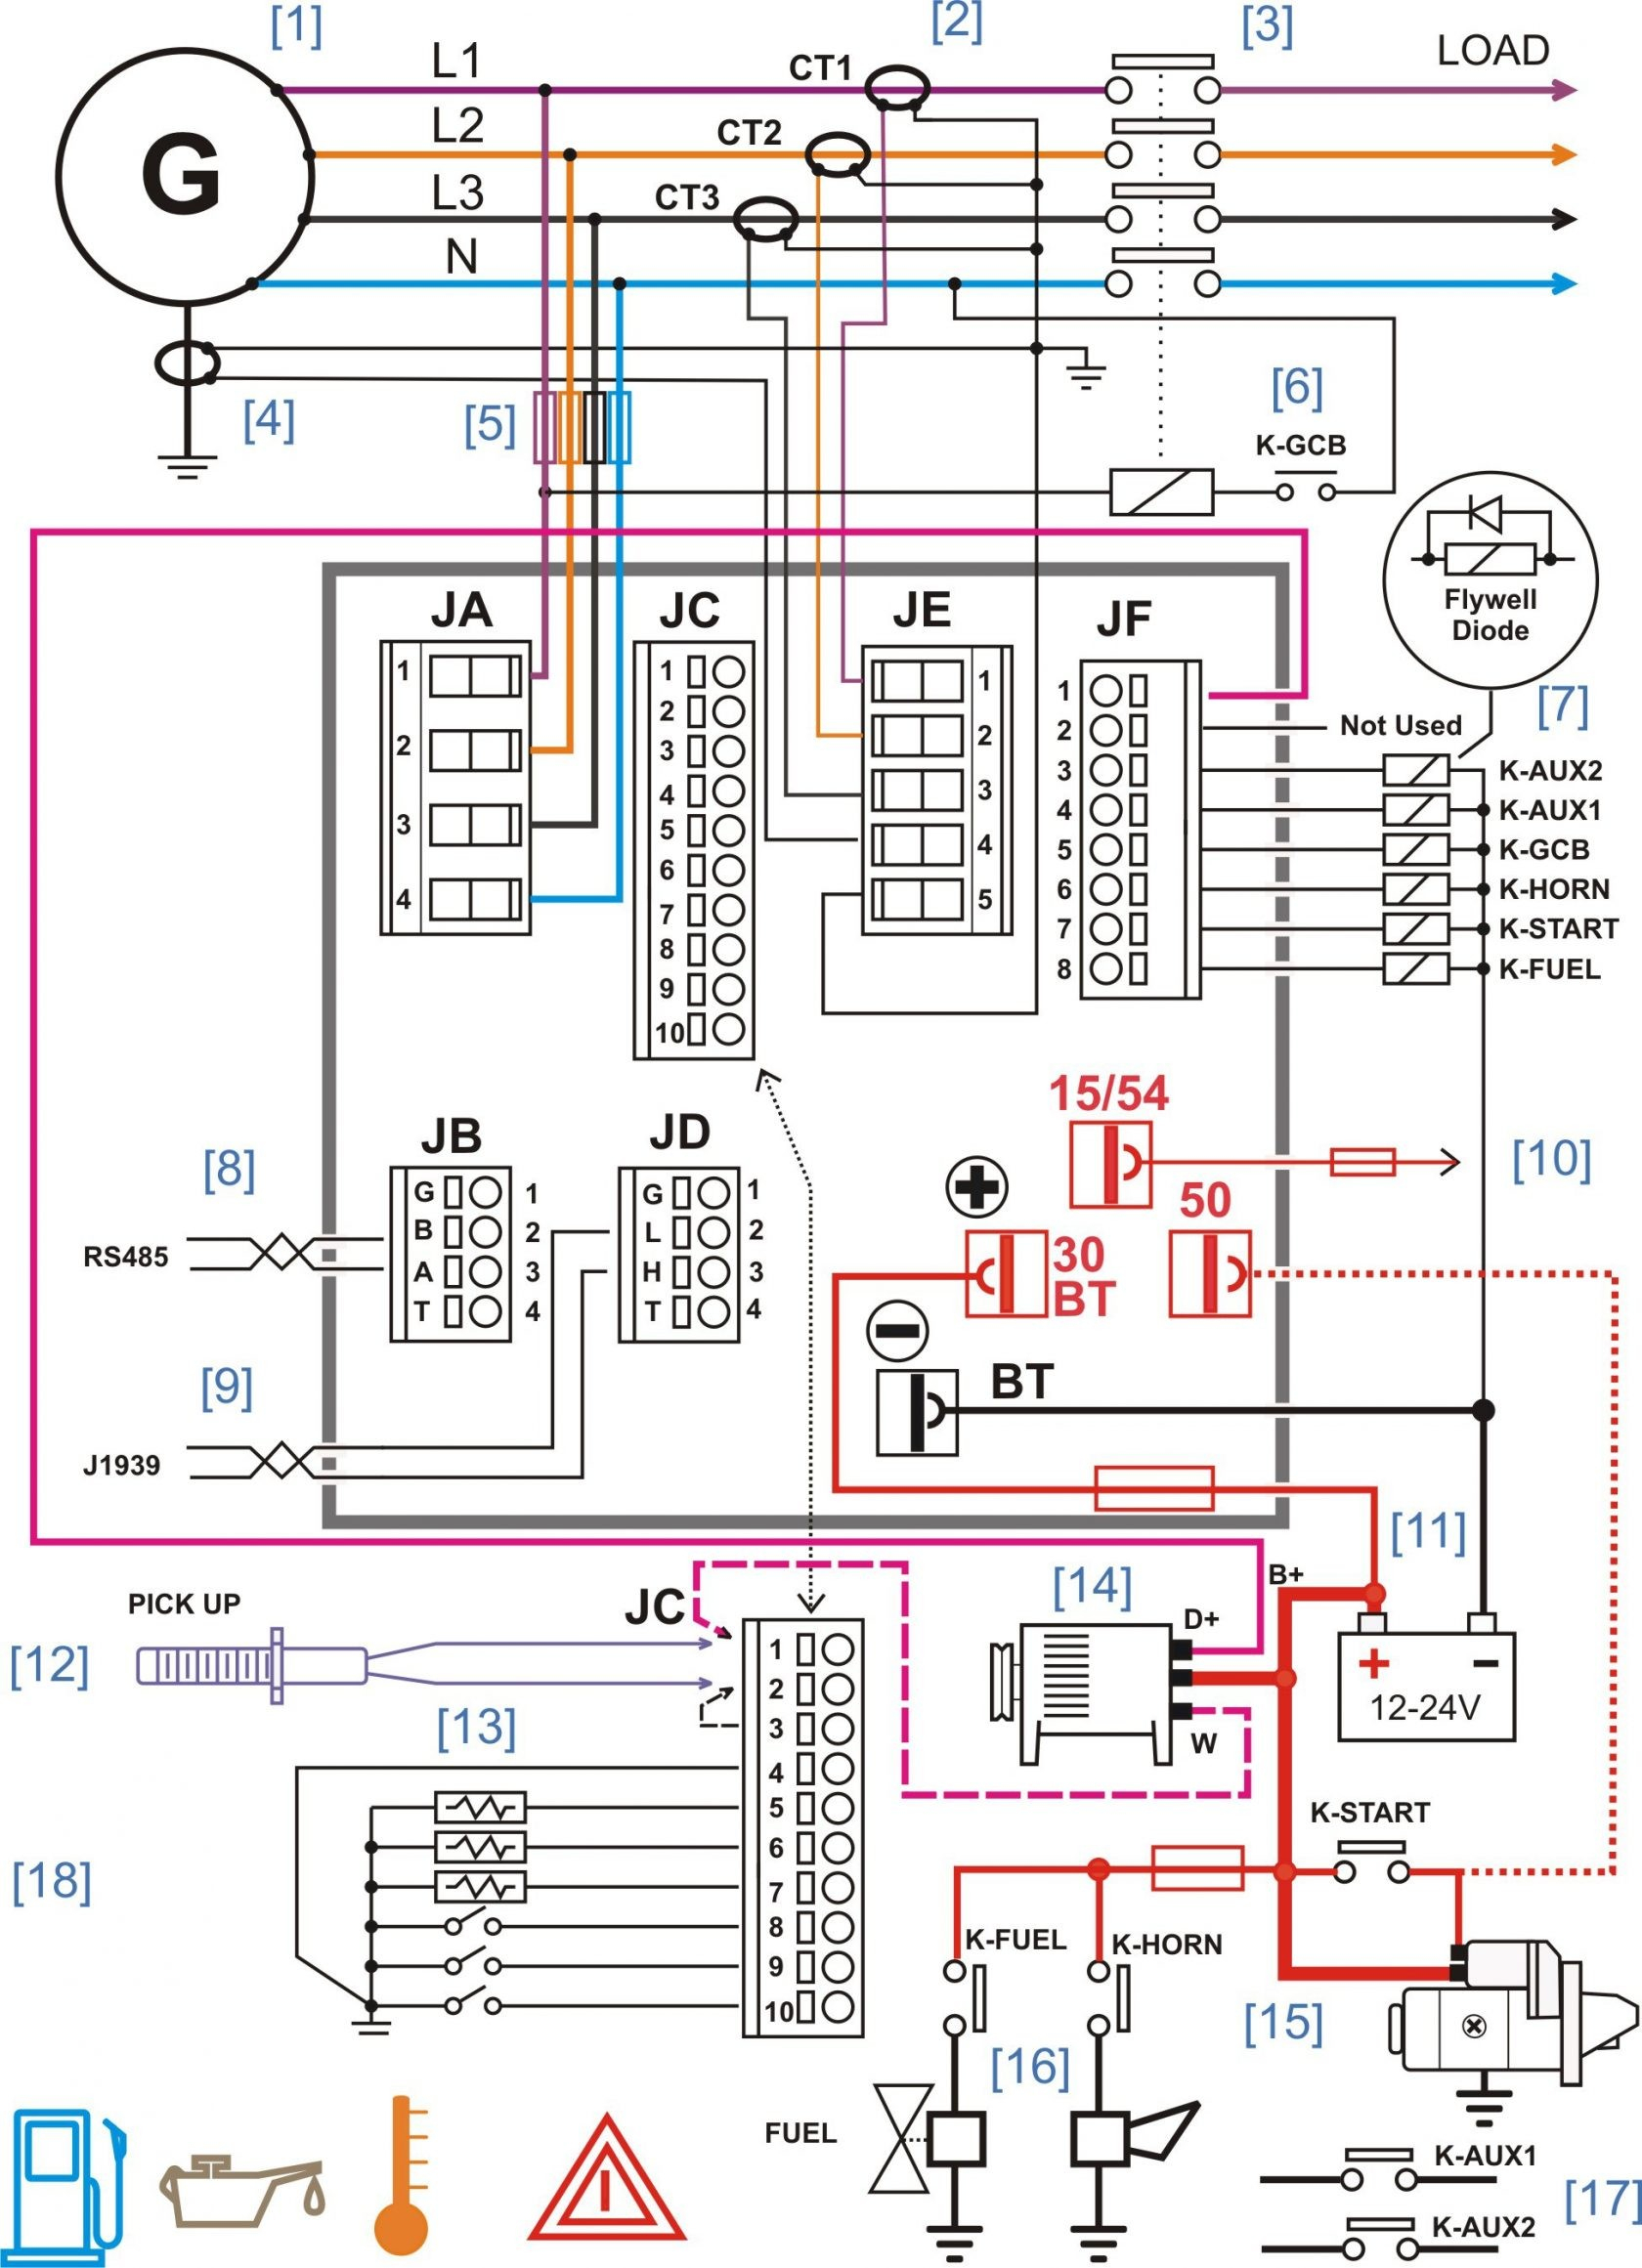 delco car stereo wiring diagram Collection-Wiring Diagram for Car Audio System Valid Wiring Diagram for Car Audio Elegant Wiring Diagram Delco 18-c